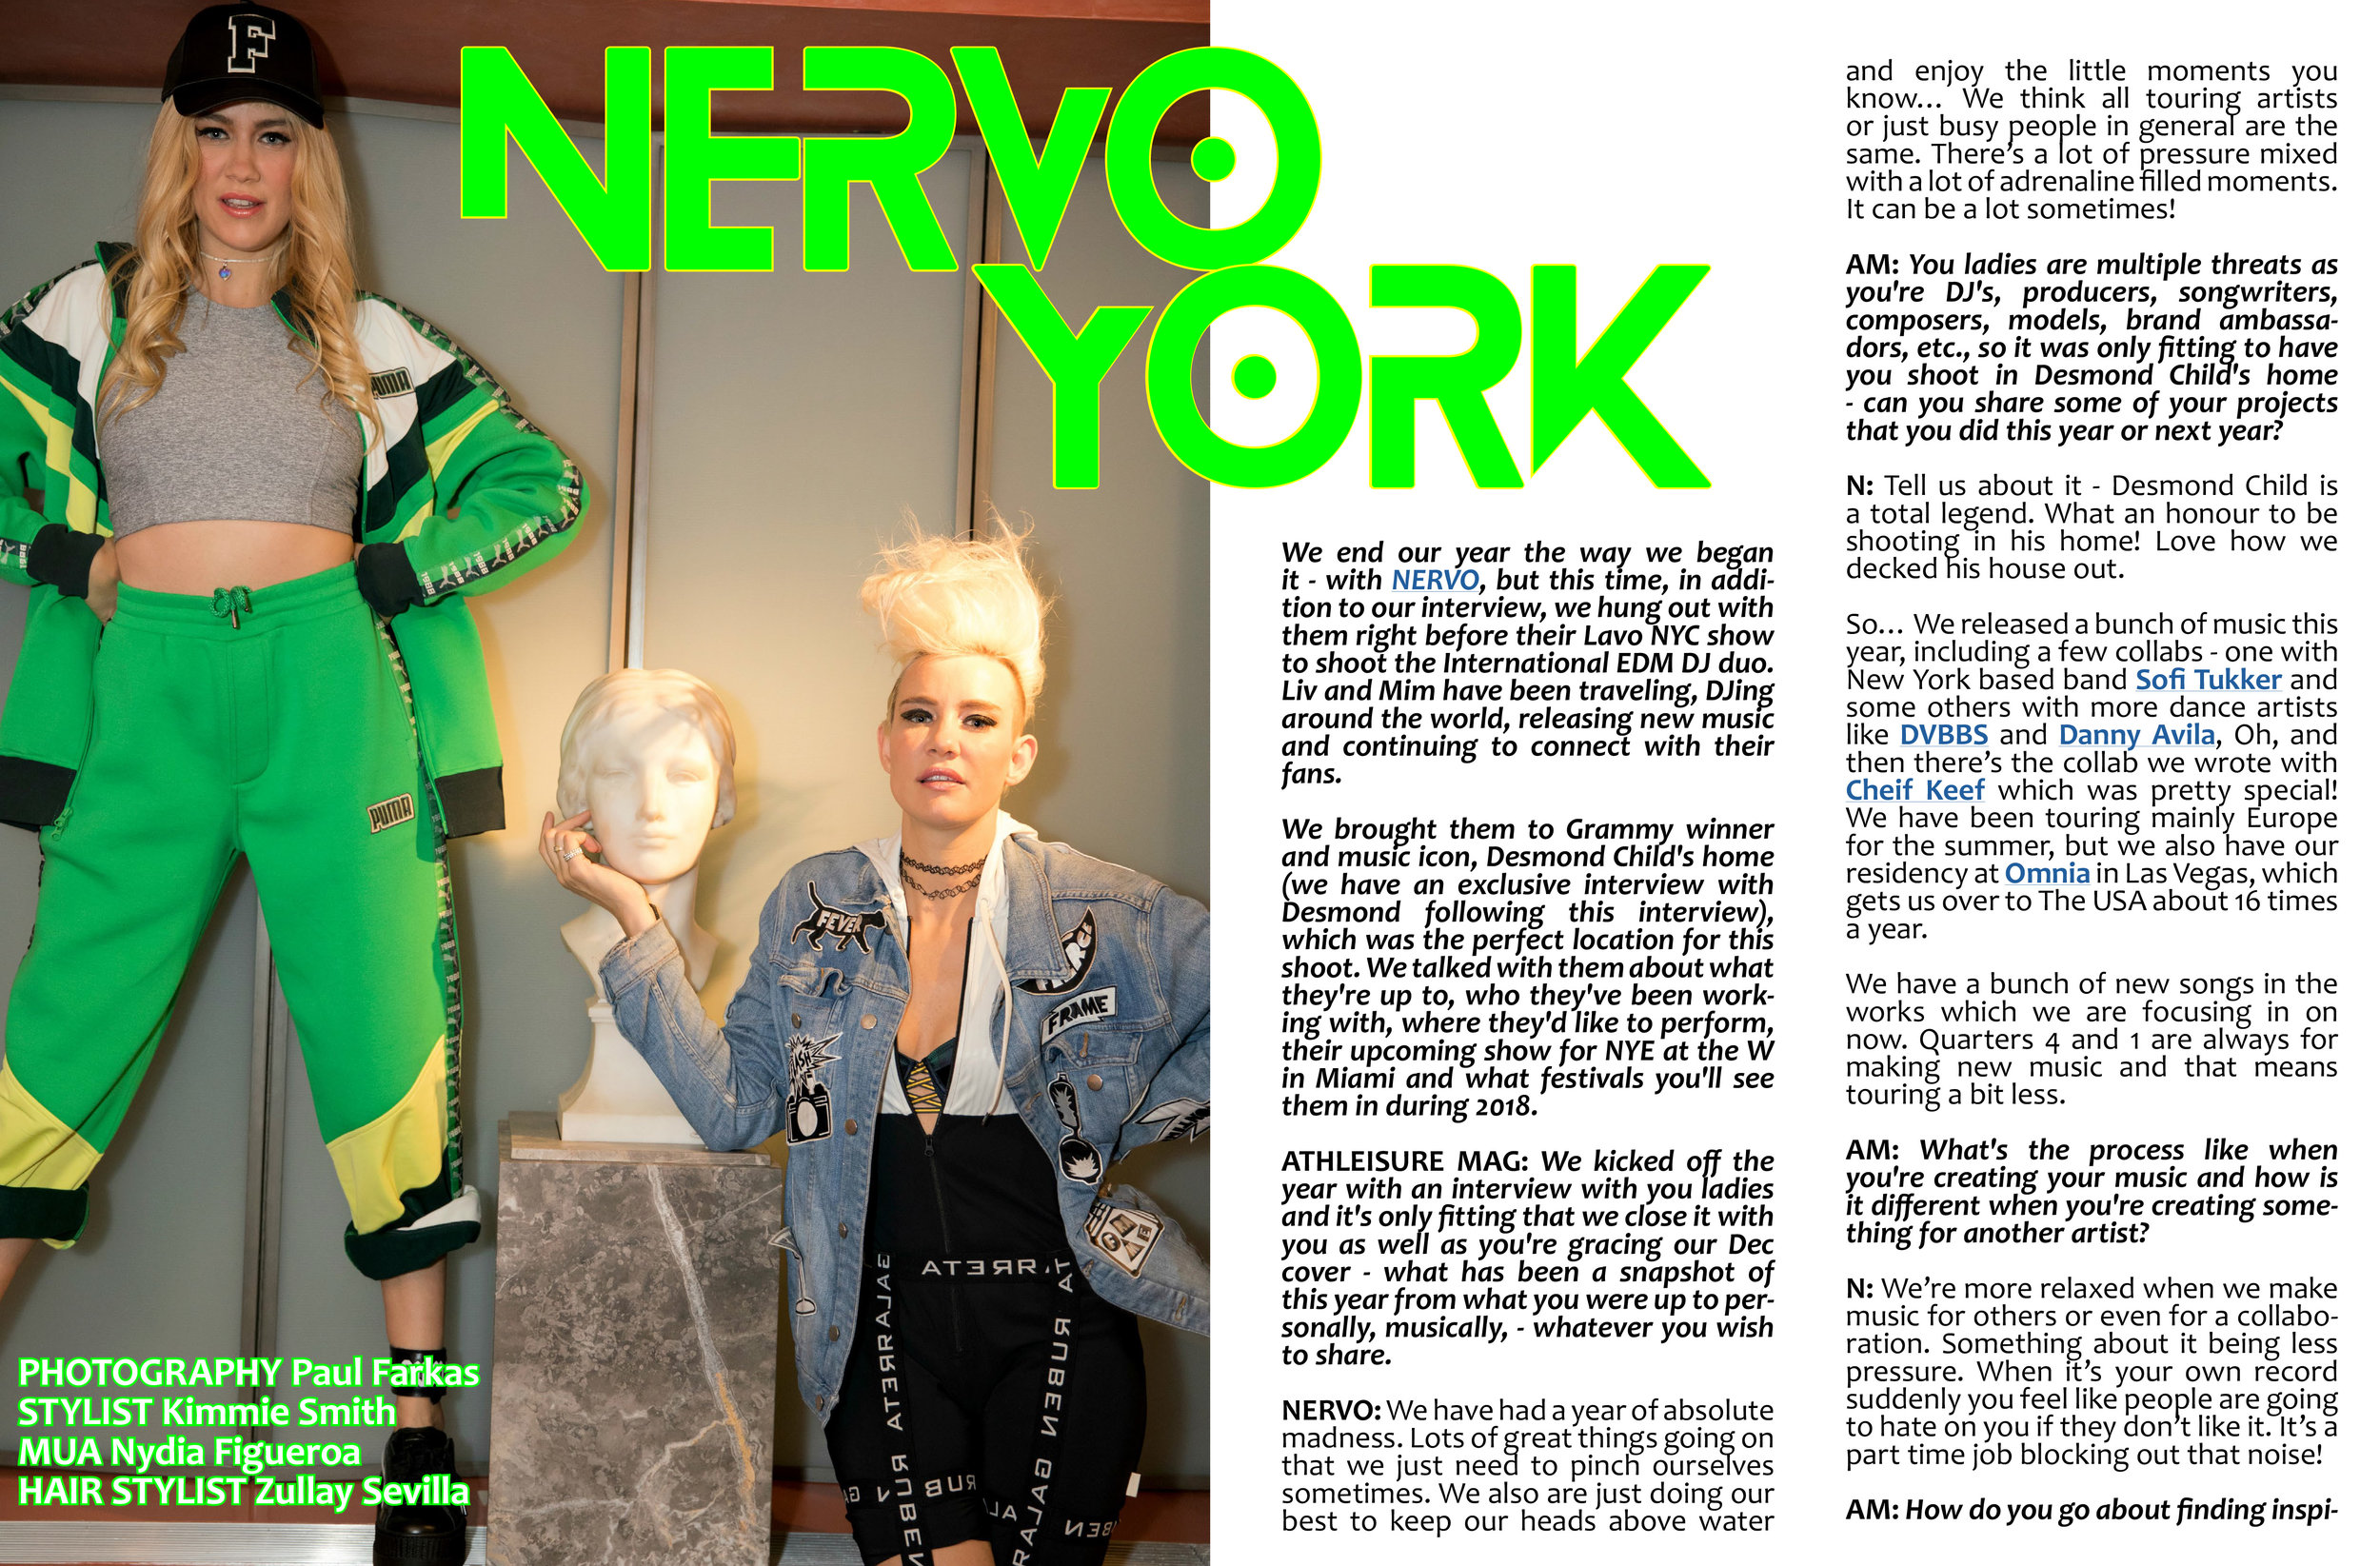 ATHLEISURE MAG DEC ISSUE WITH OUR CELEBRITY COVER, NERVO, EDM DJ DUO